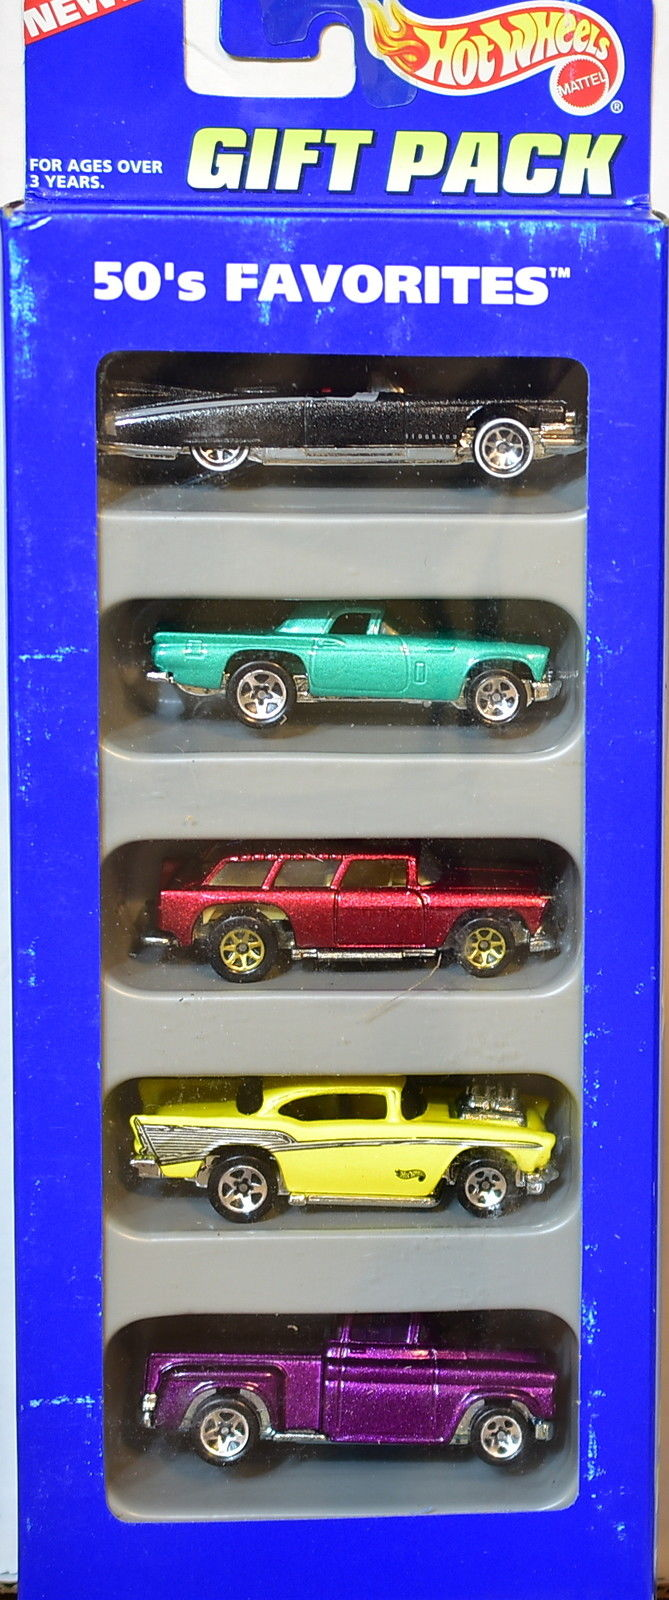 HOT WHEELS 1995 GIFT PACK 50'S FAVORITES FLASHSIDER CHEVY CADILLAC 5 CAR PACK